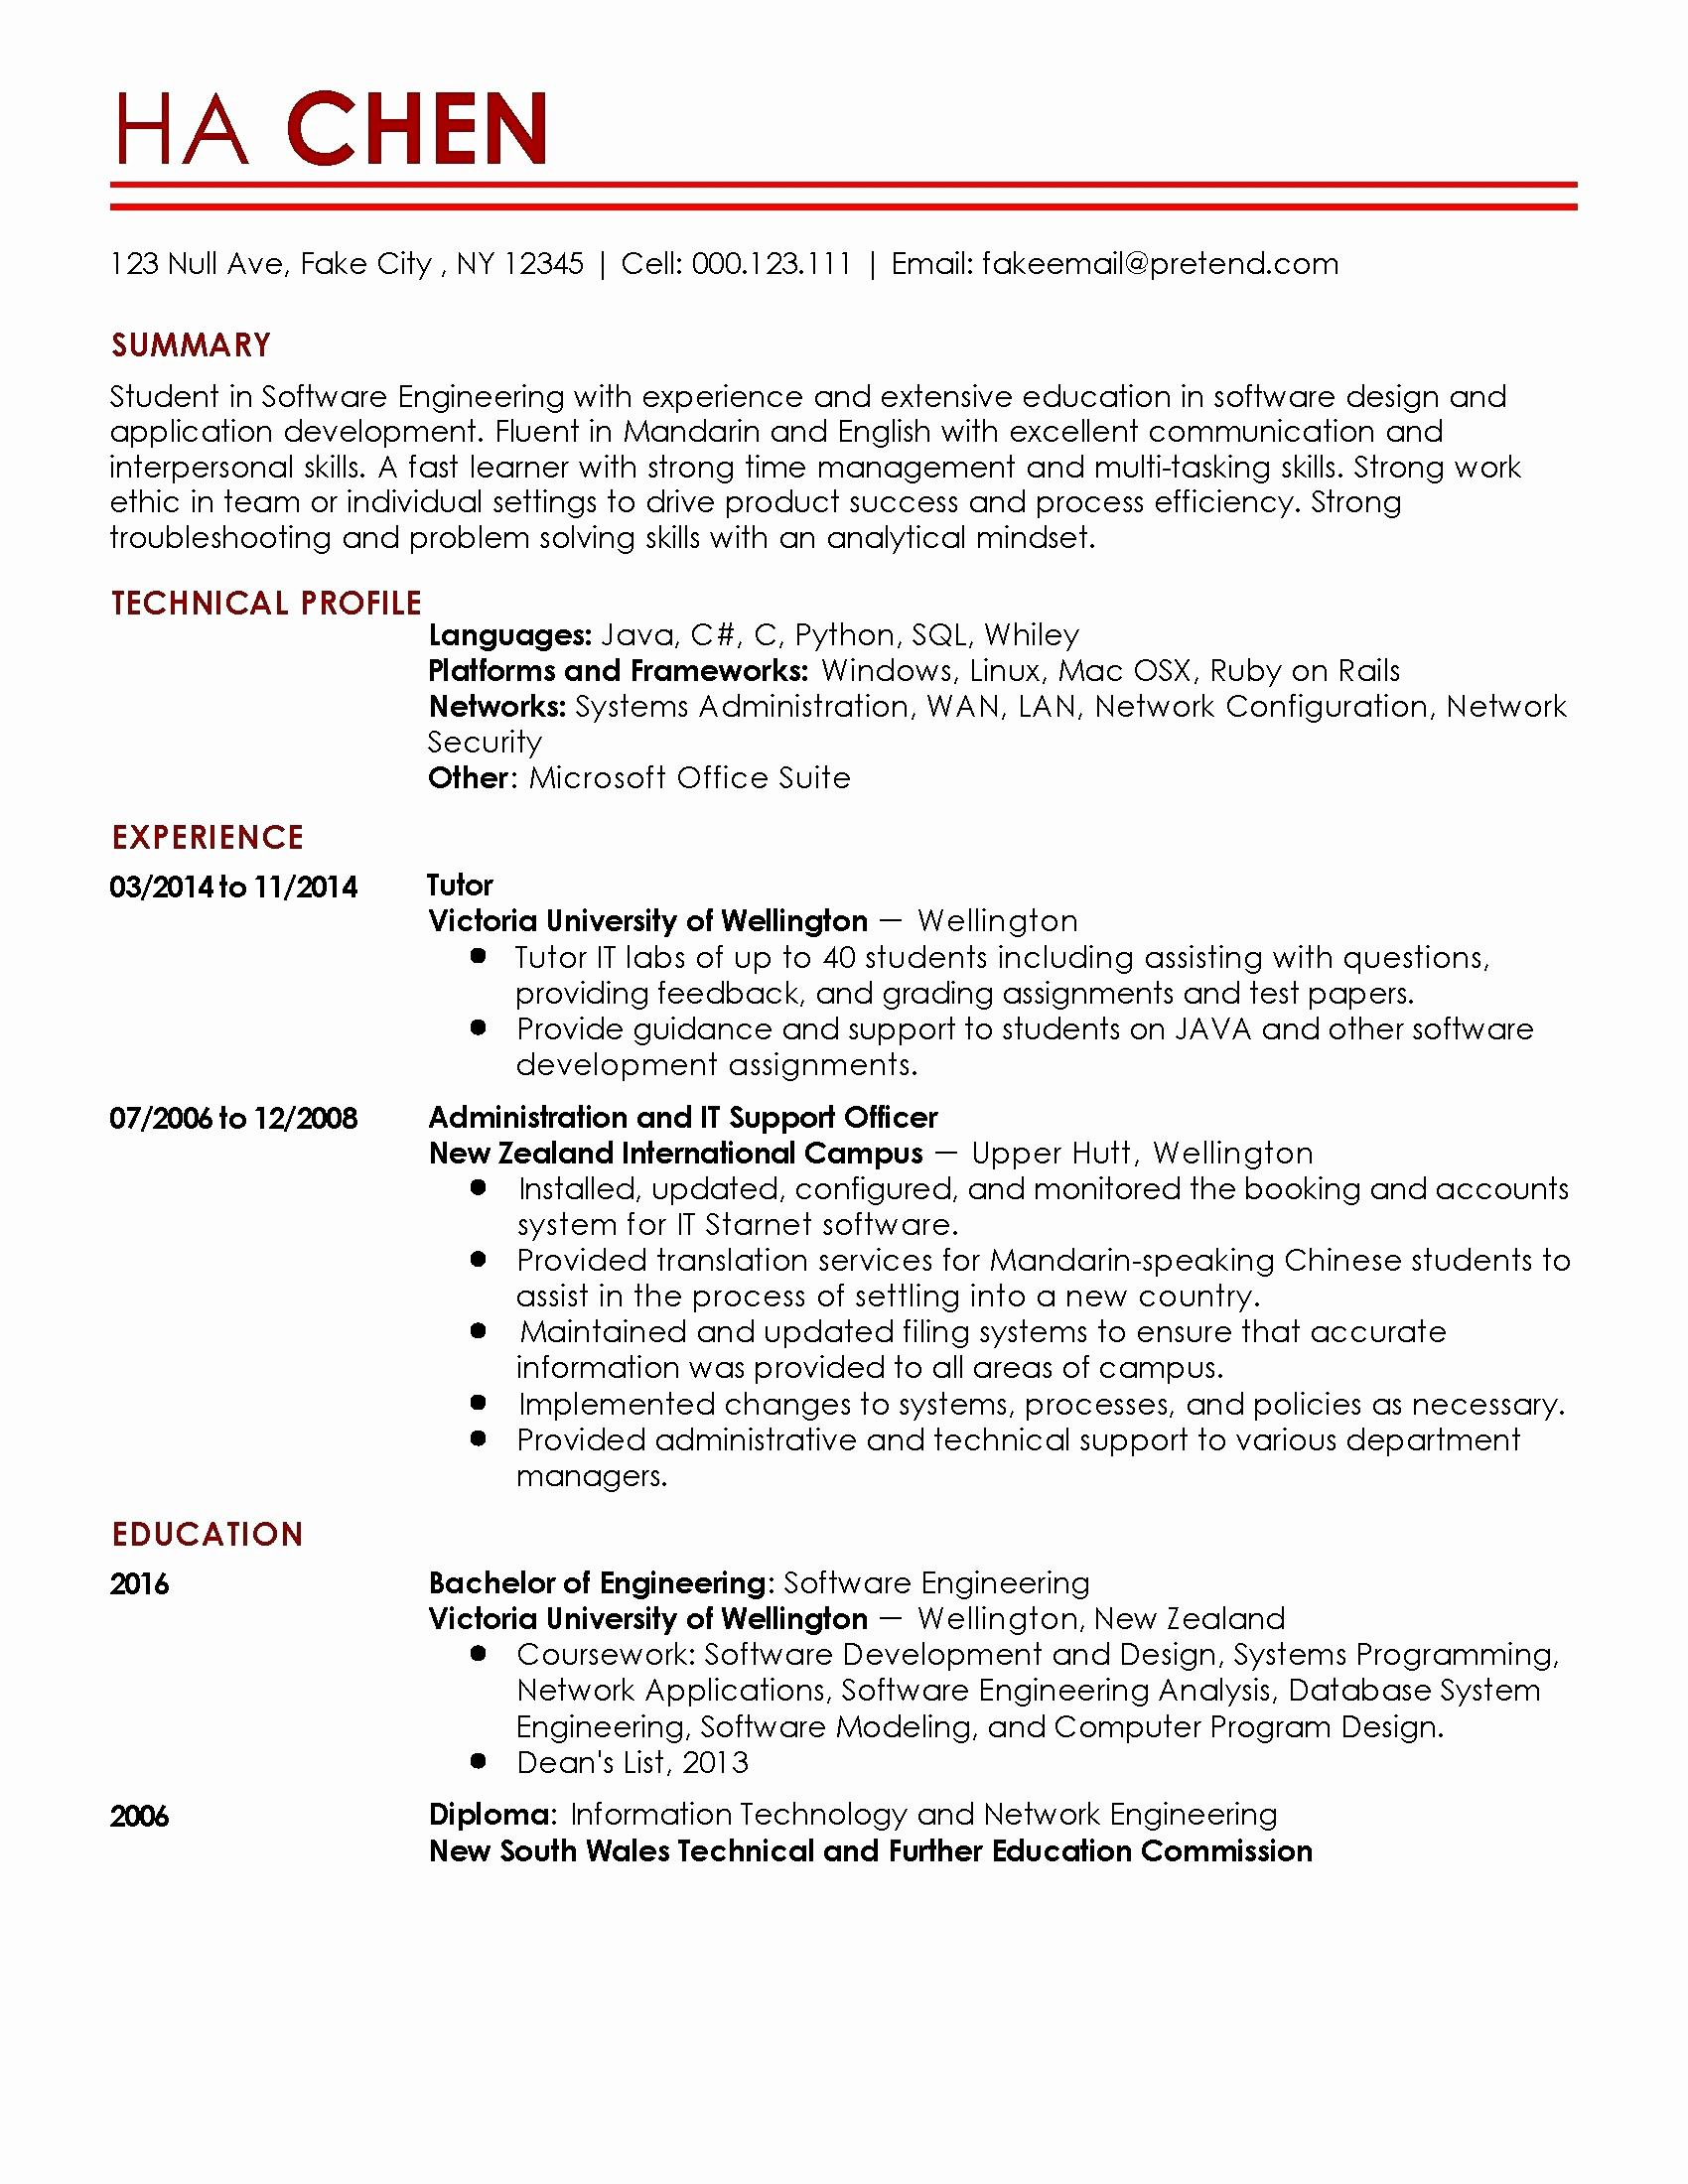 Sample Administrative Resume - Administrative Resume Sample Best Admin Executive Resume format